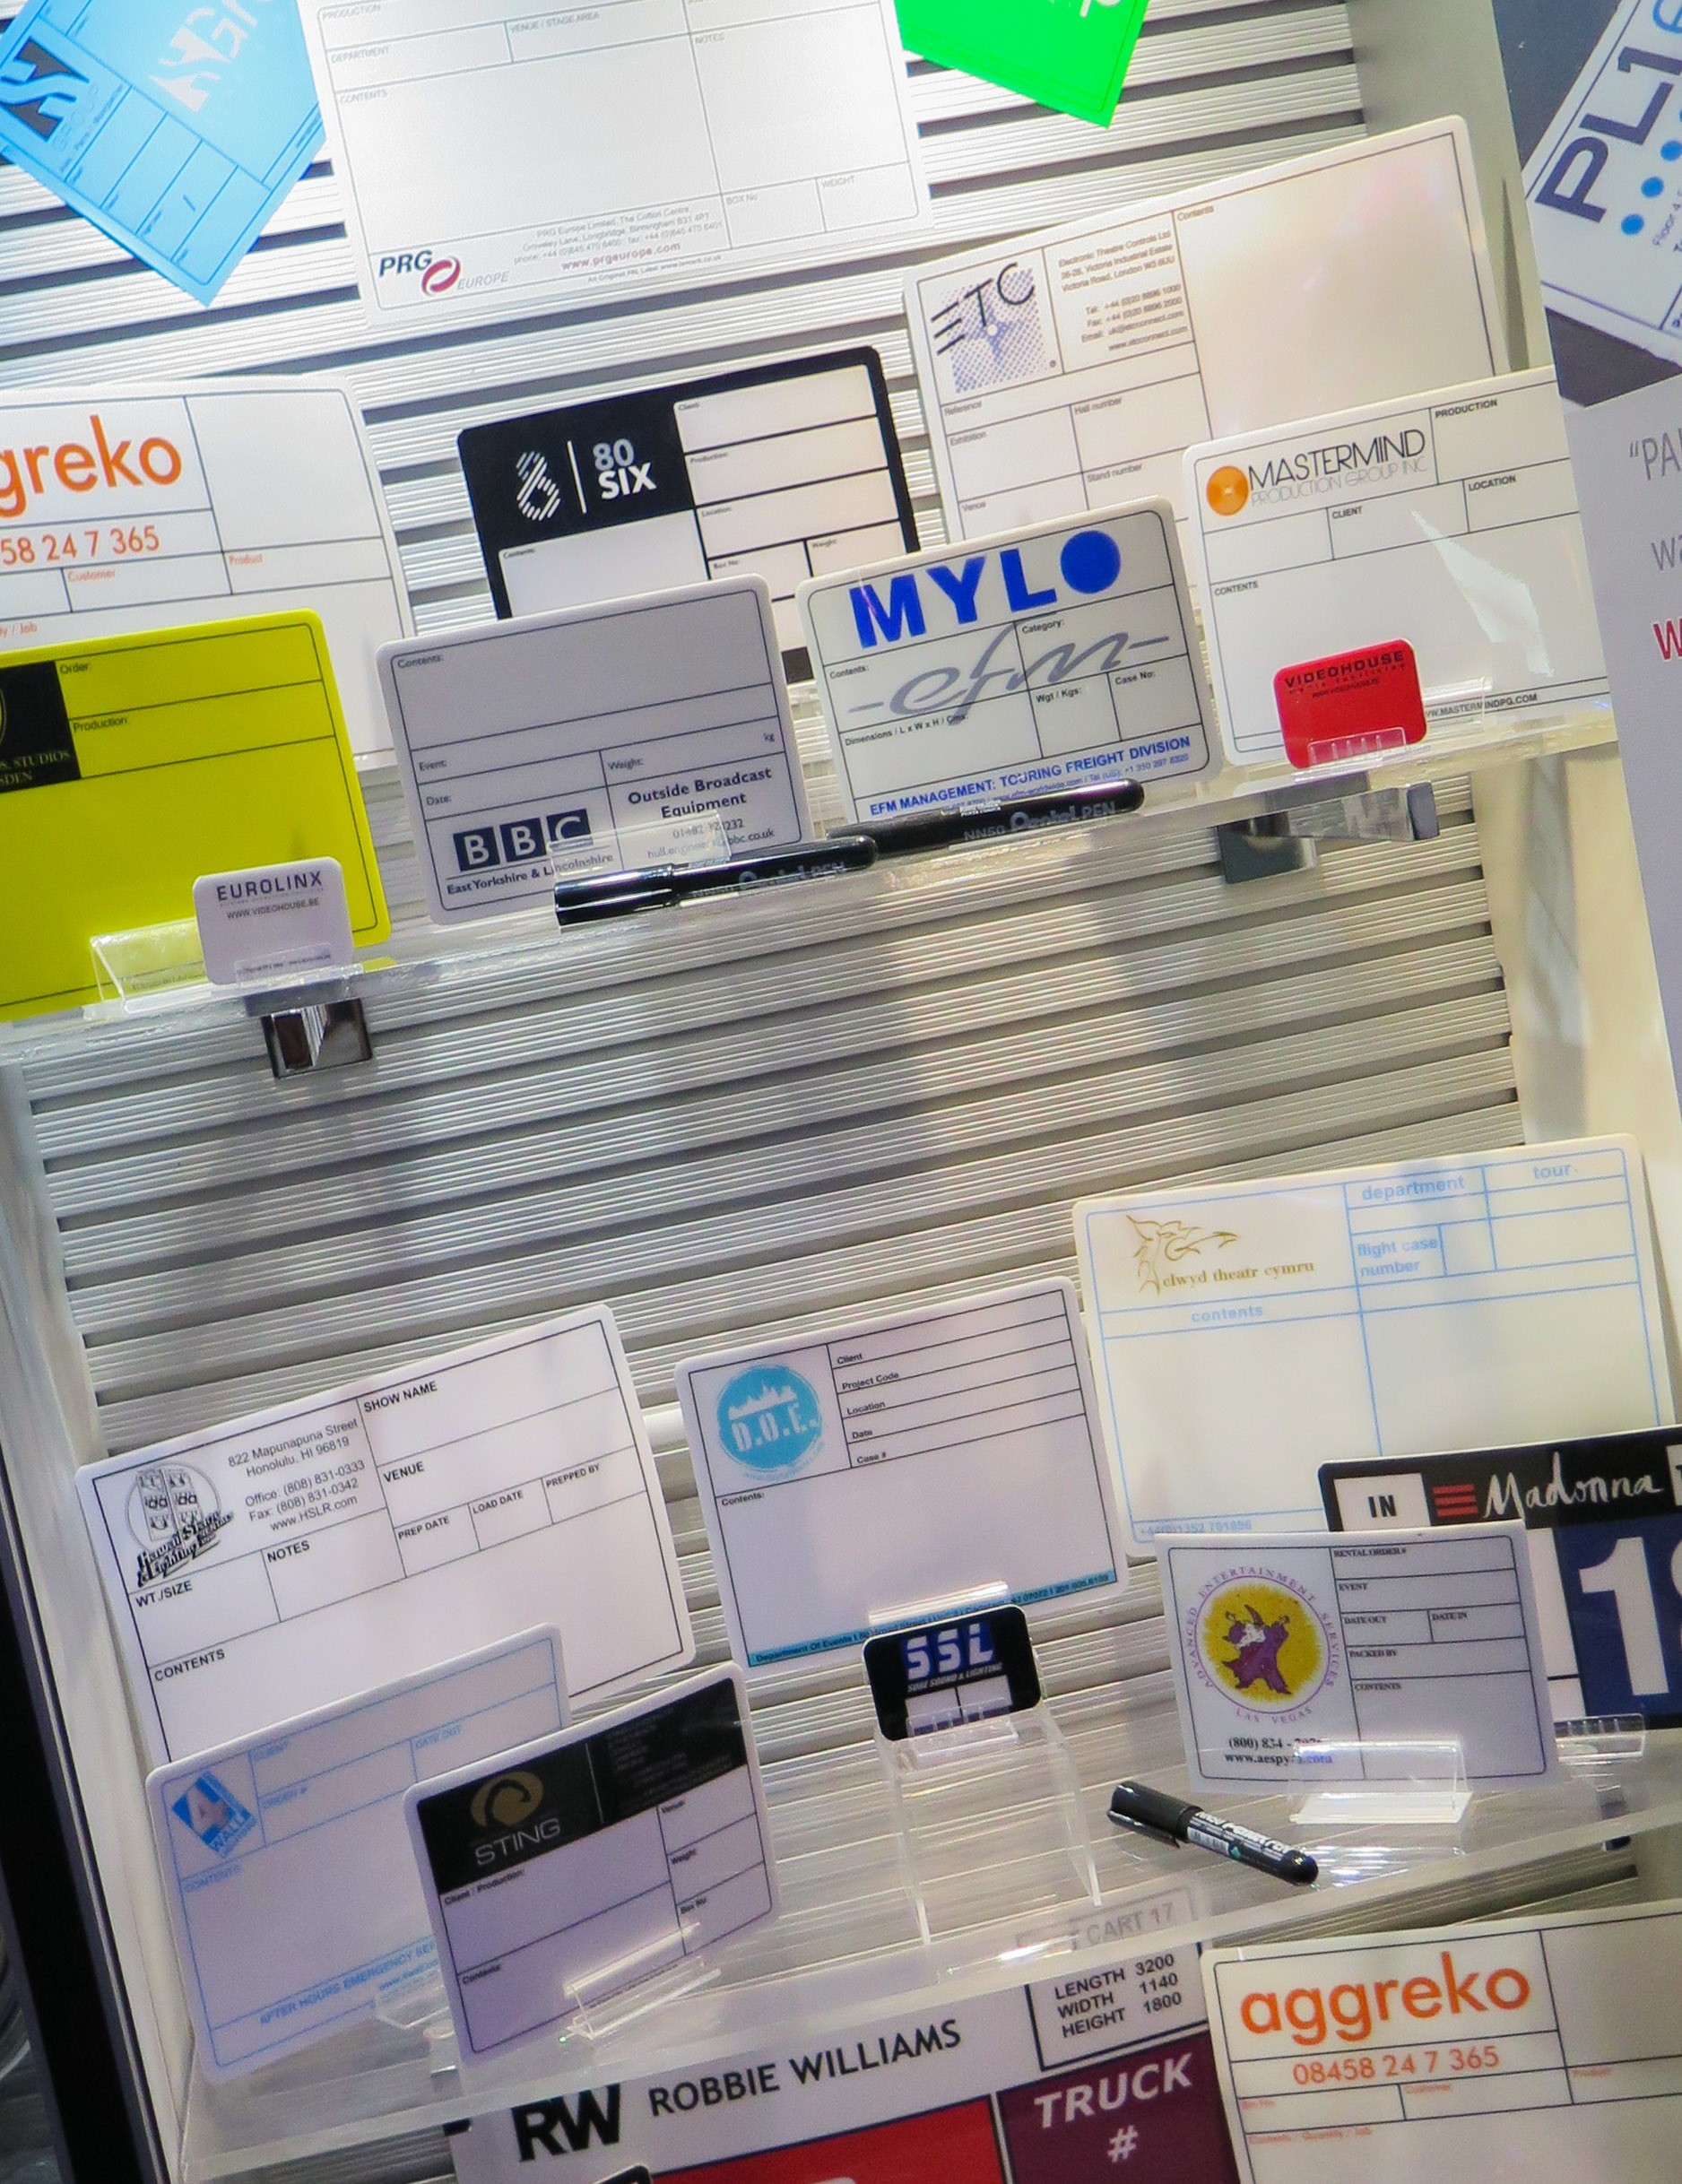 On show at LDI, just some of the big brands that have used our case labels